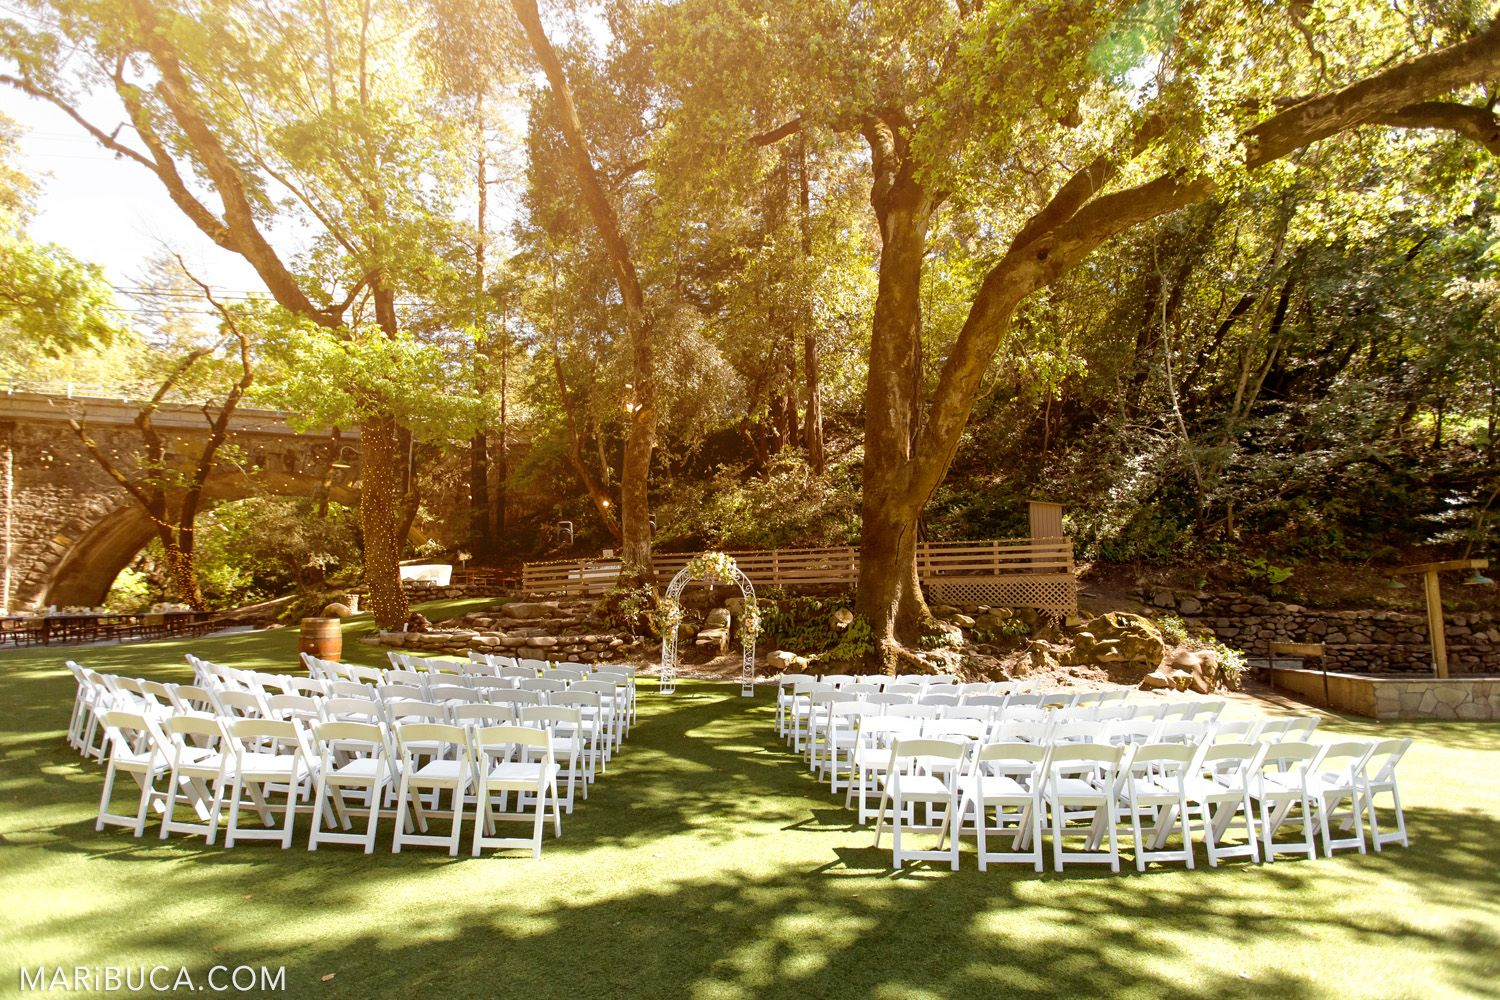 Saratoga Springs Venue Wedding Bay Area Photographer Maribuca Photography Bay Area Photographer Outdoor Wedding Venues Outdoor Wedding Bay Area Wedding